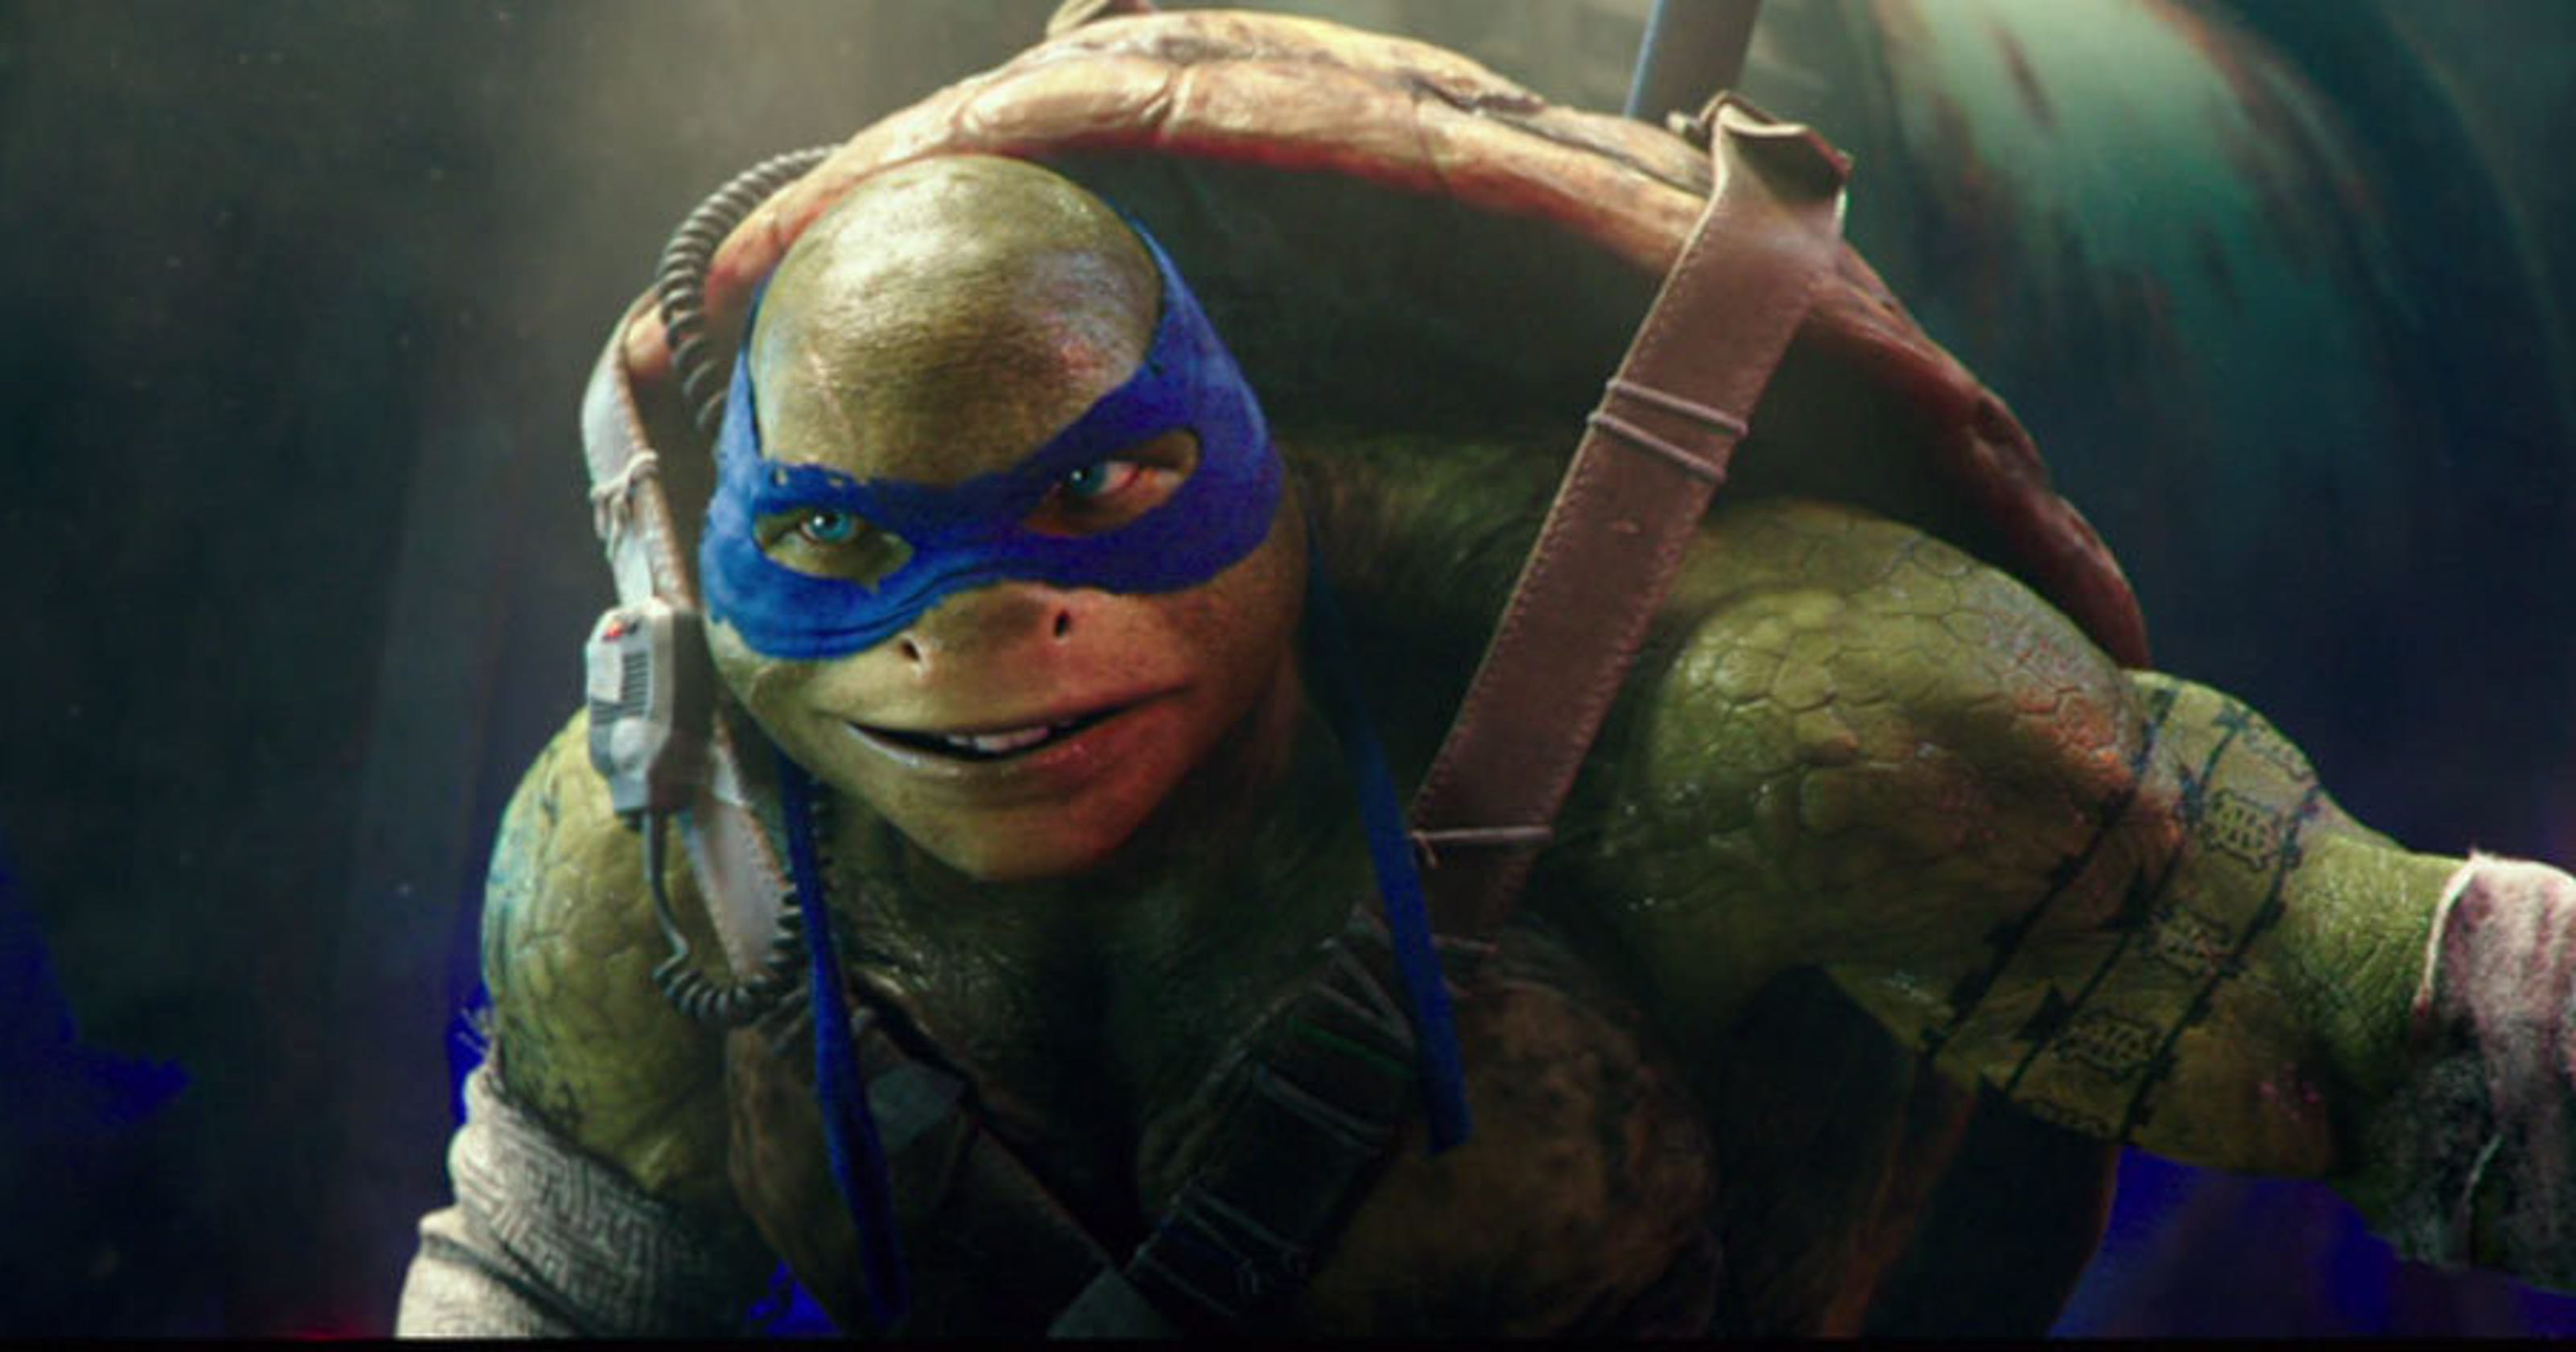 Movie capsules: 'Ninja Turtles'